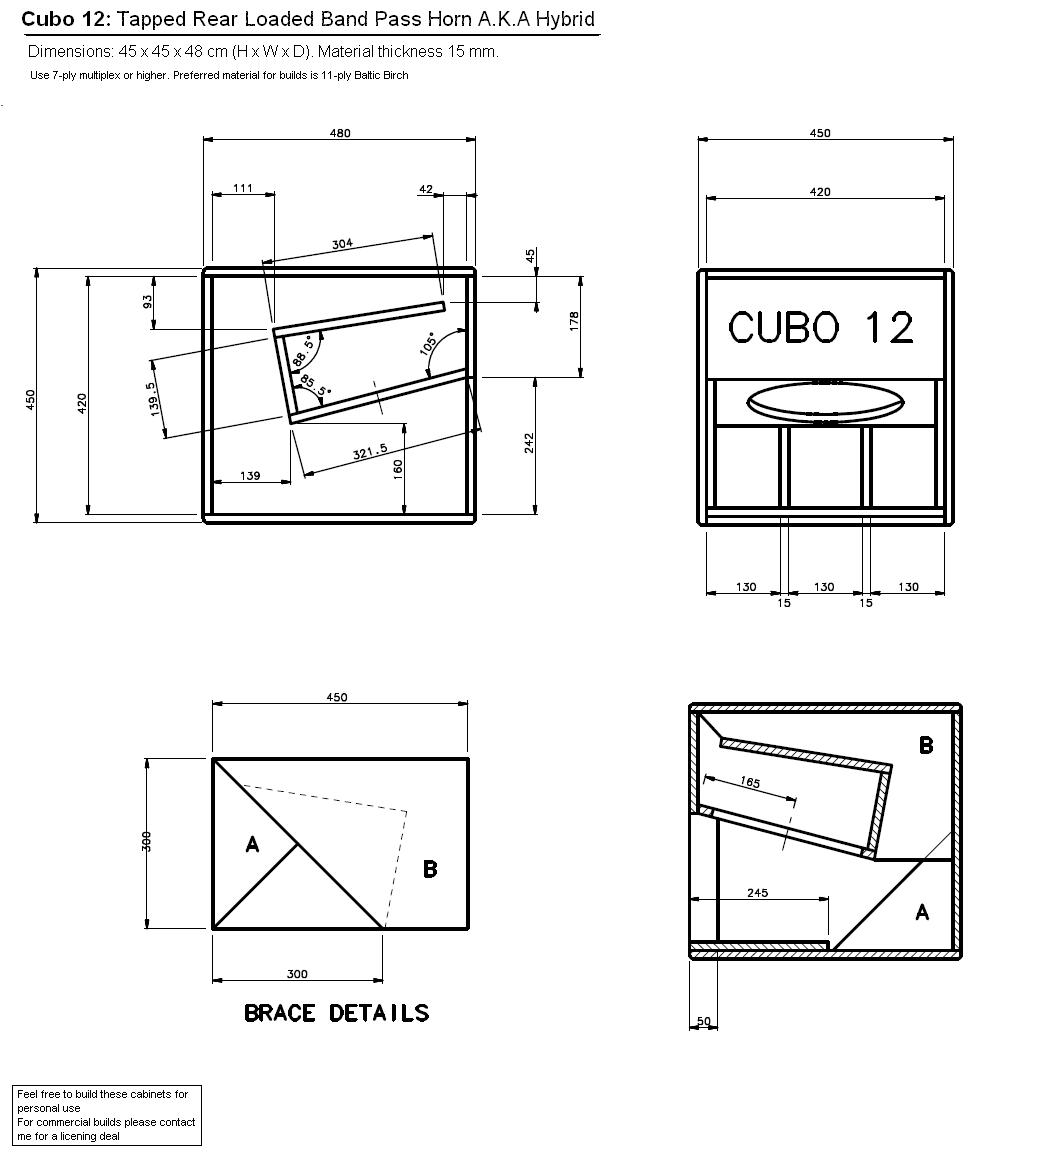 12 Subwoofer Box Diagram Free Download • Oasis-dl.co